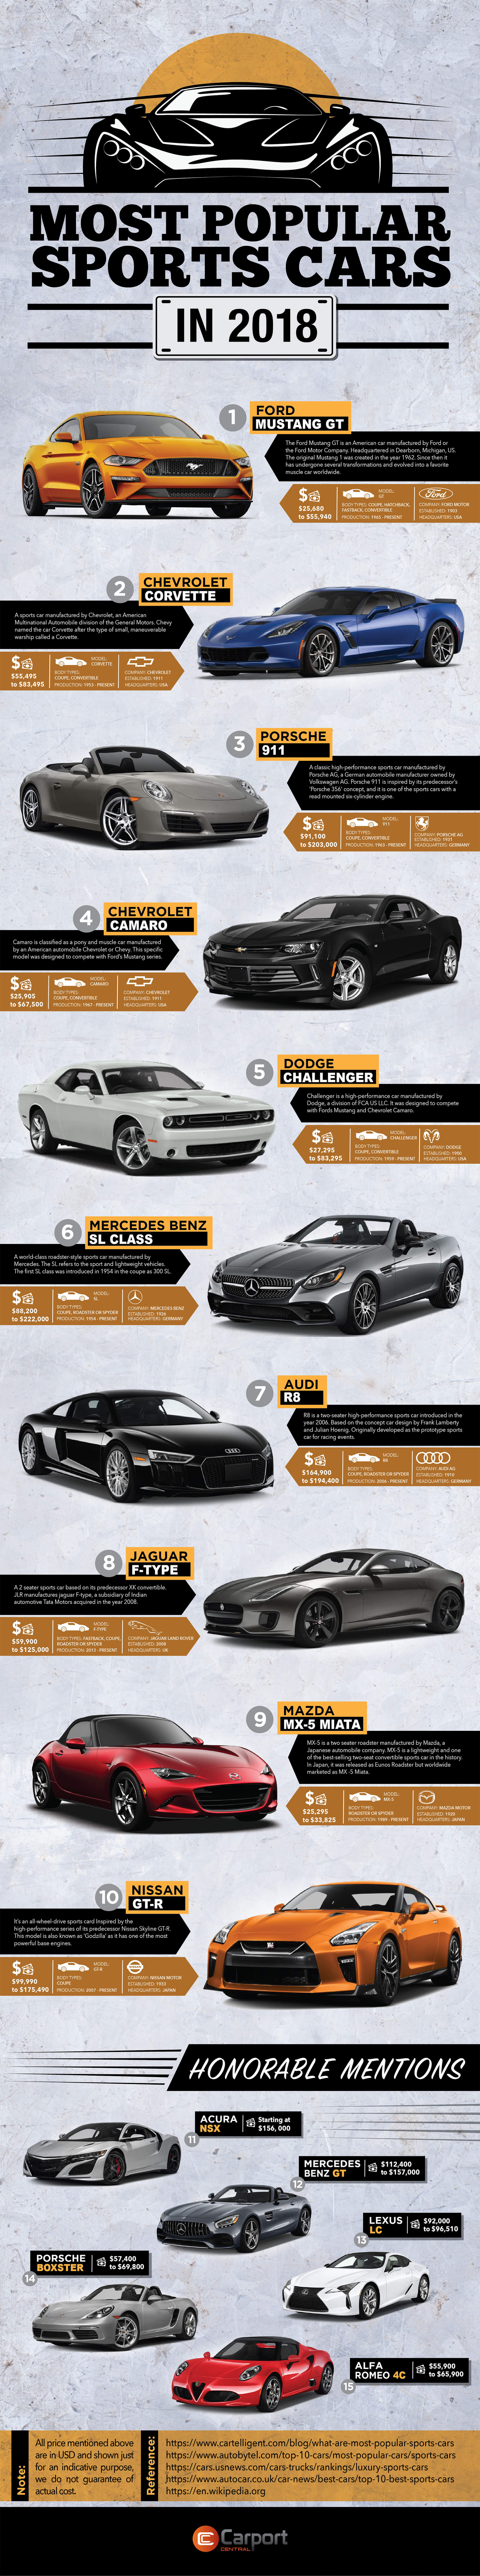 Most Popular Sports Cars in 2018 by Carport Central